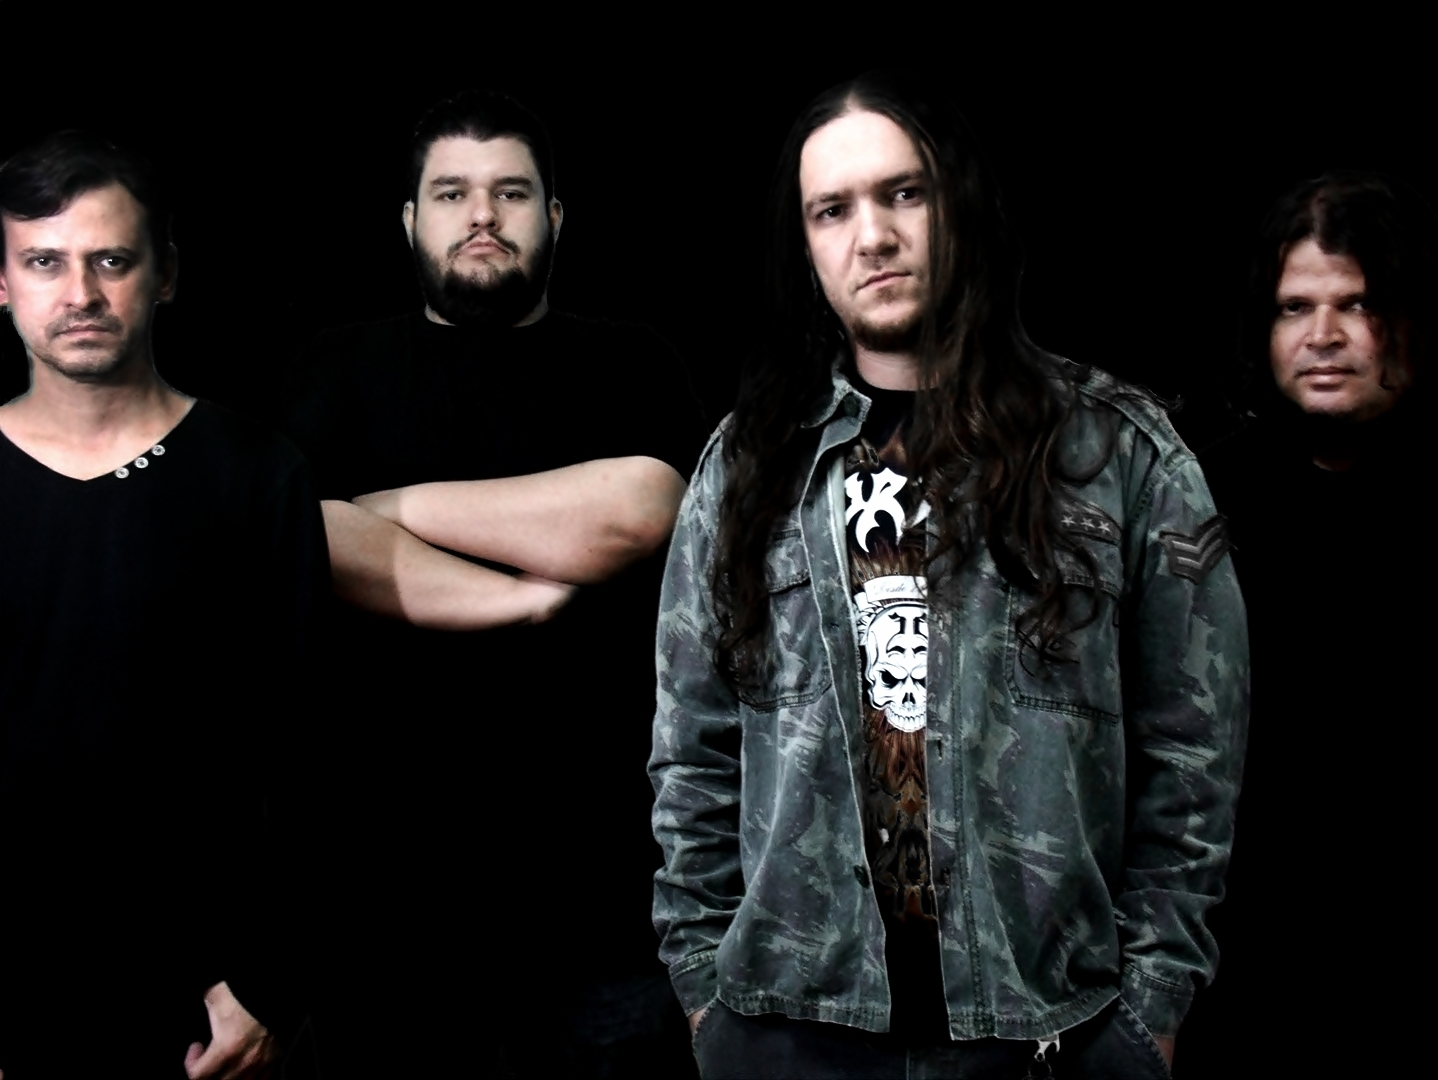 One Thousand Dead (Brasil) firma contrato con sello Americano/Europeo, RTR Records